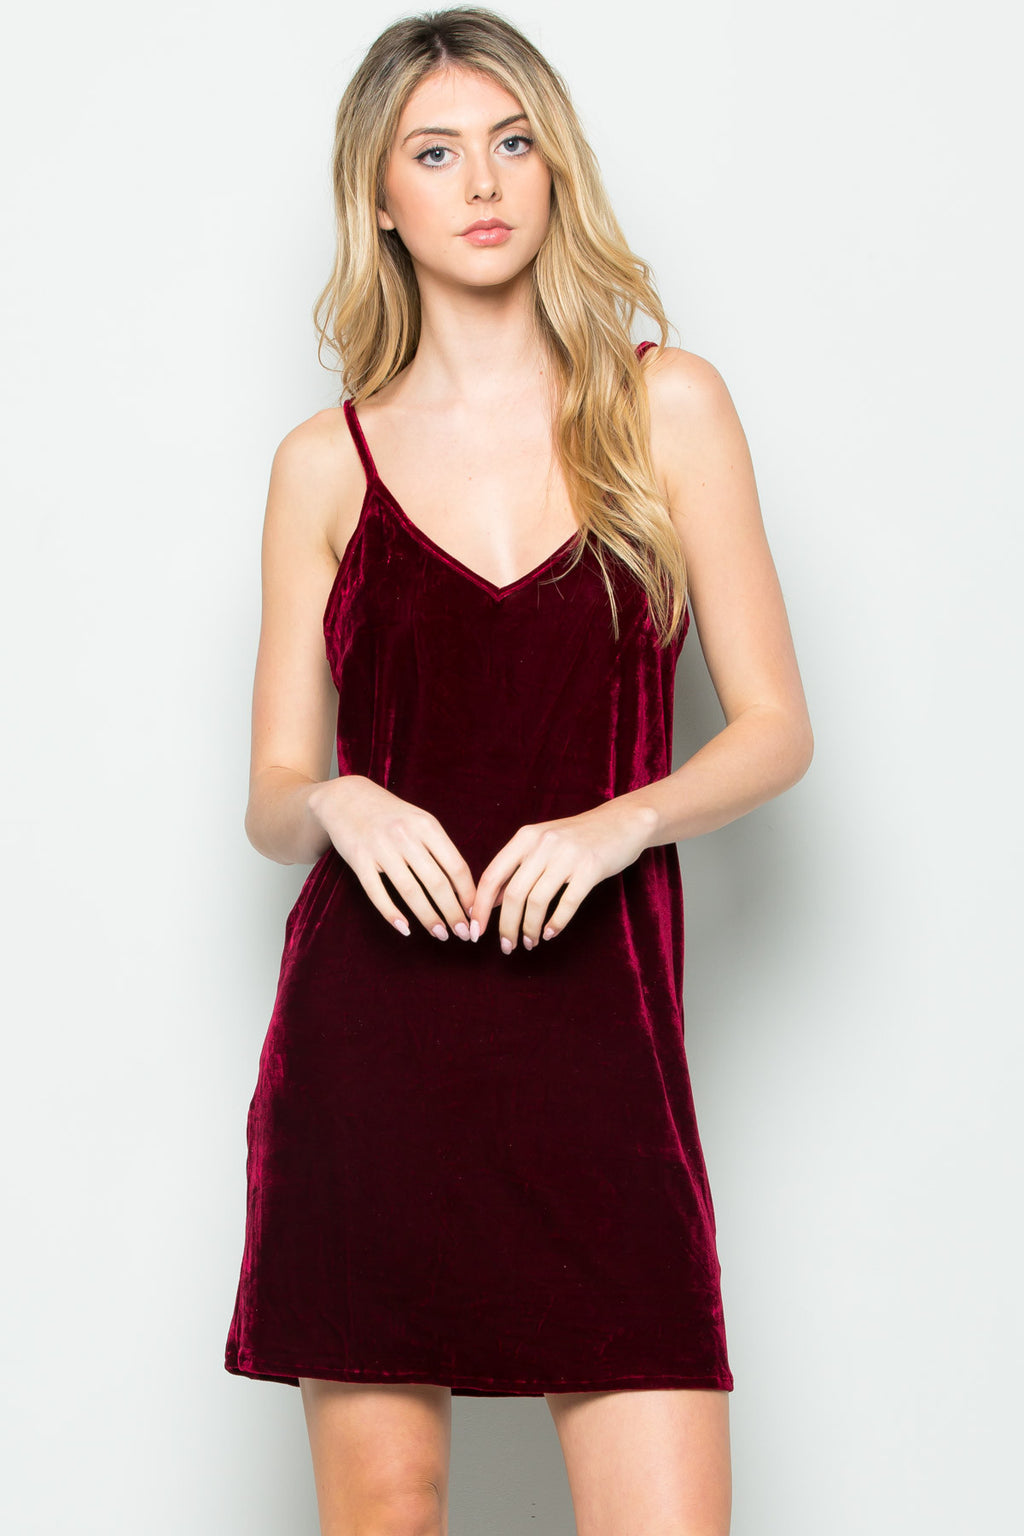 Open Back Crush Velvet Cami Slip Dress in Burgundy - Dresses - My Yuccie - 2